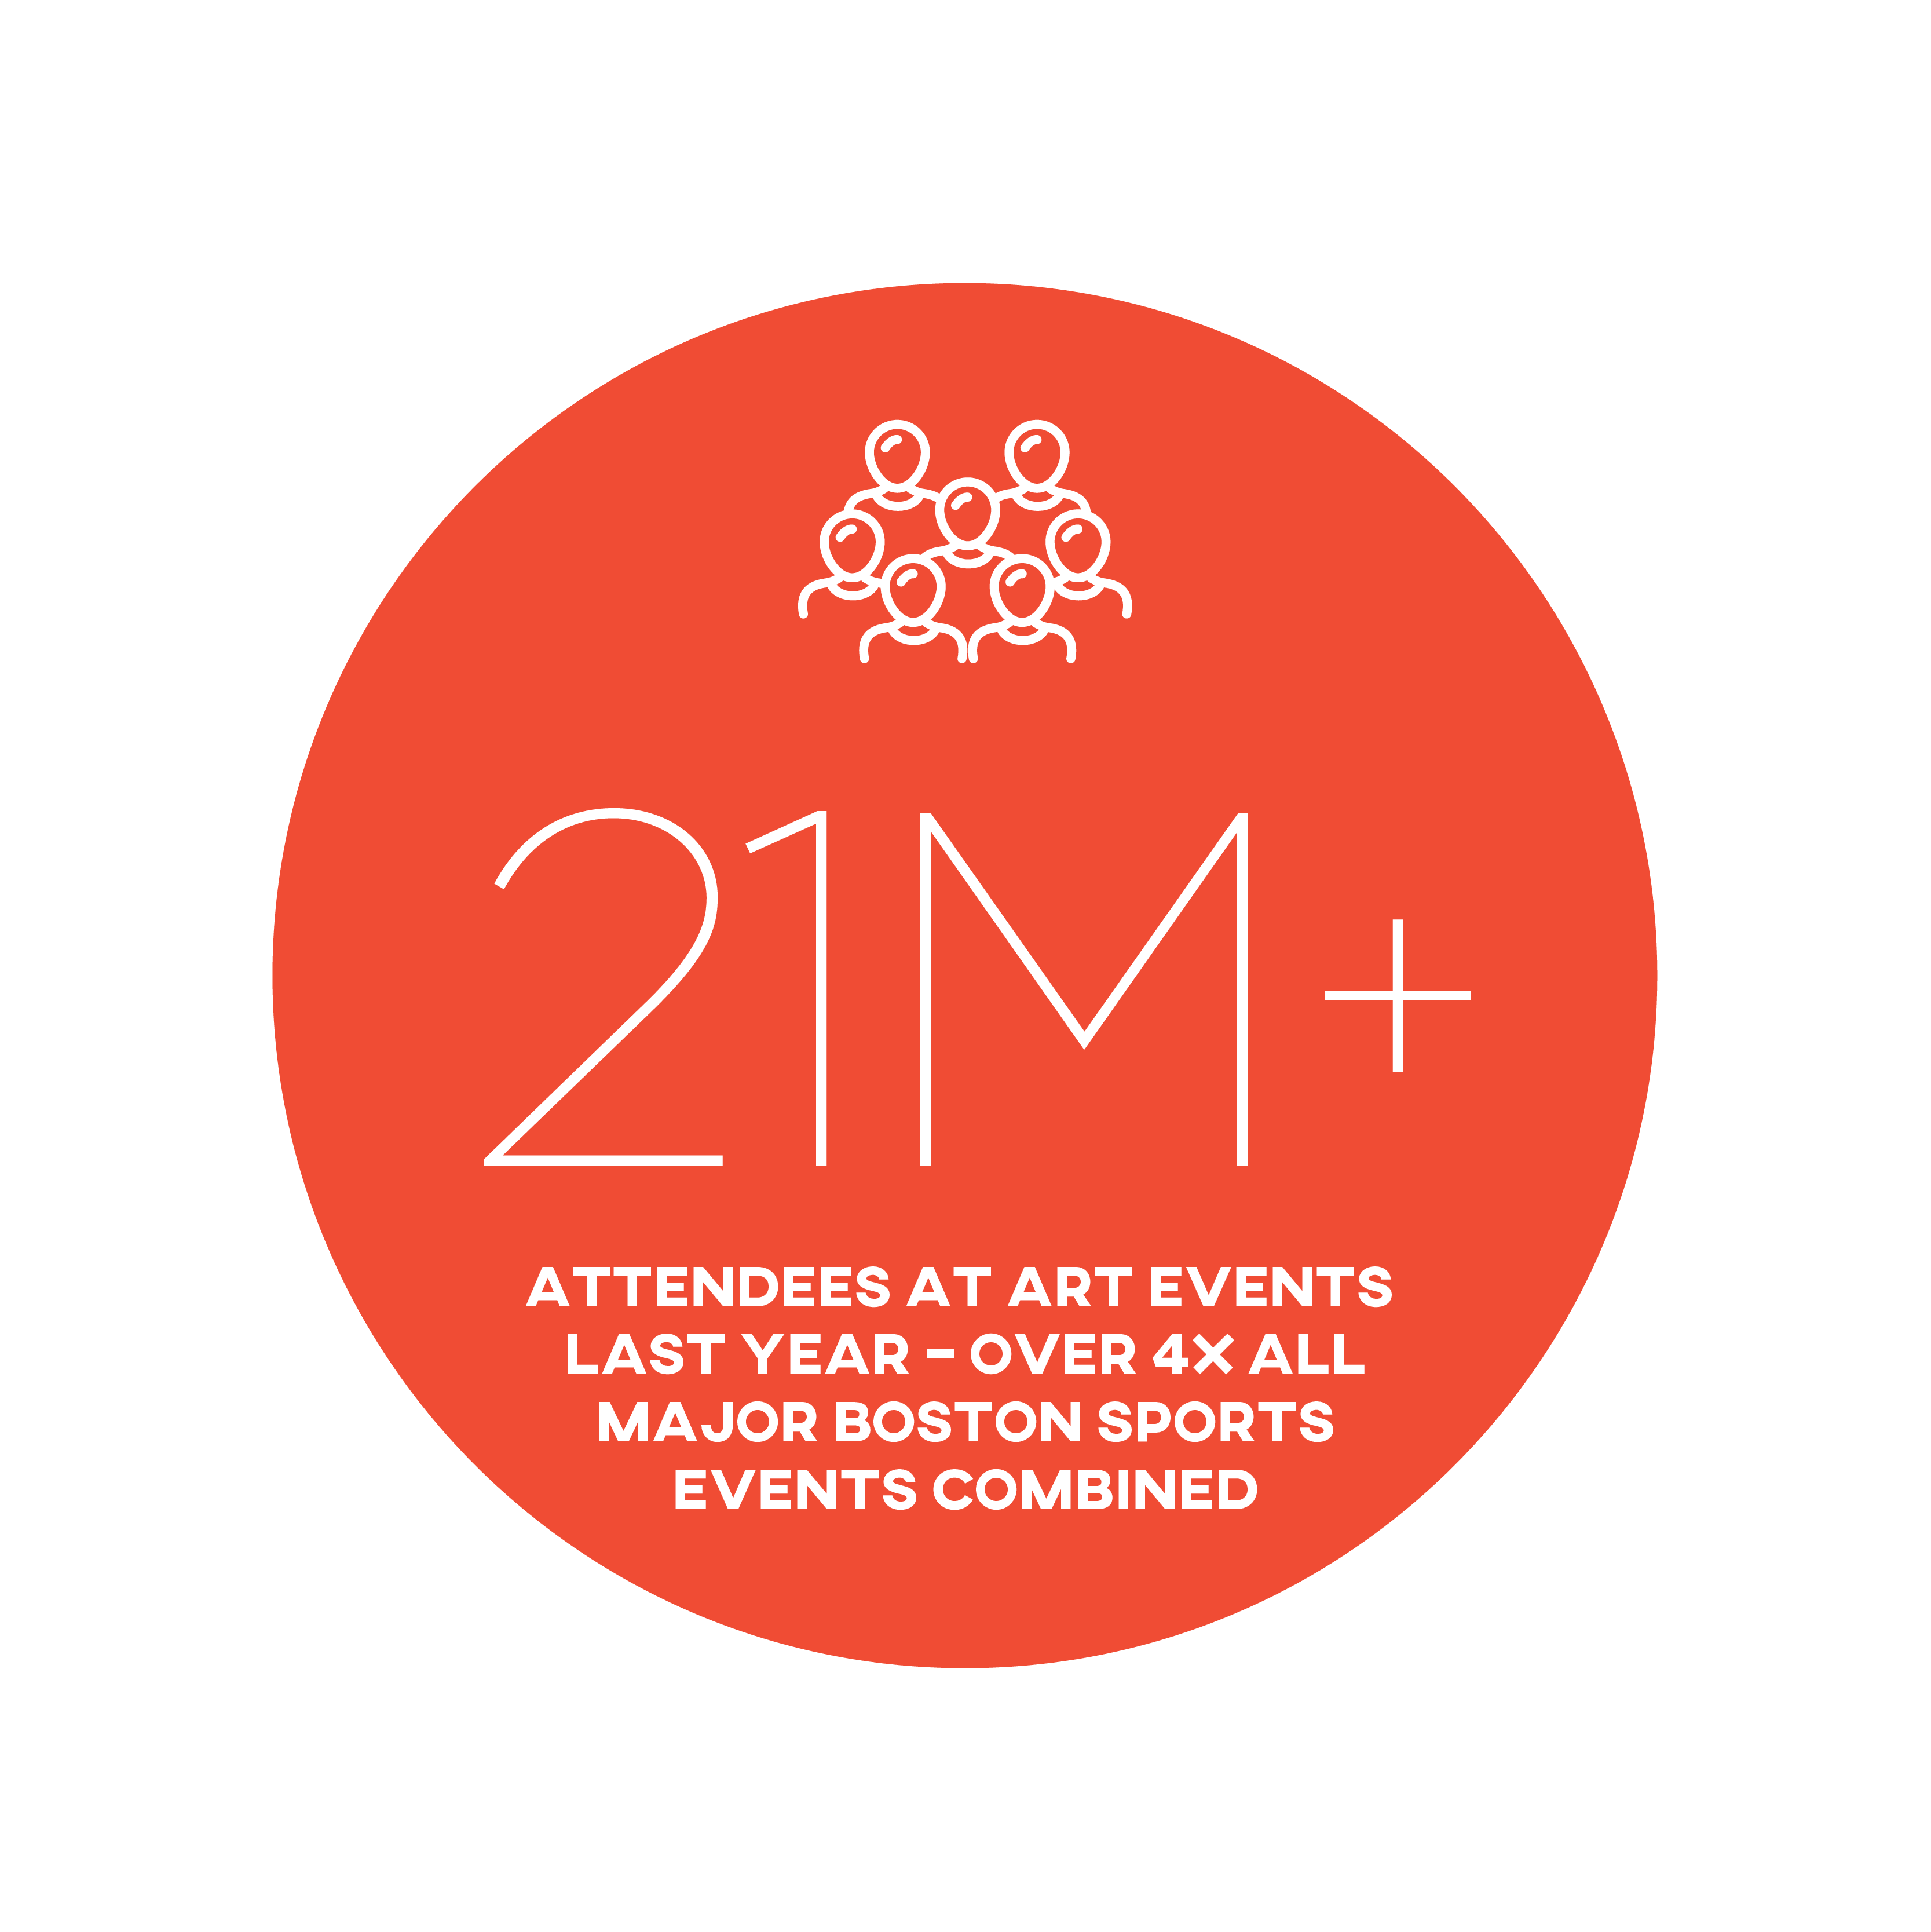 21 million + Attendees at art events last year - over 4 times all major Boston sports events combined